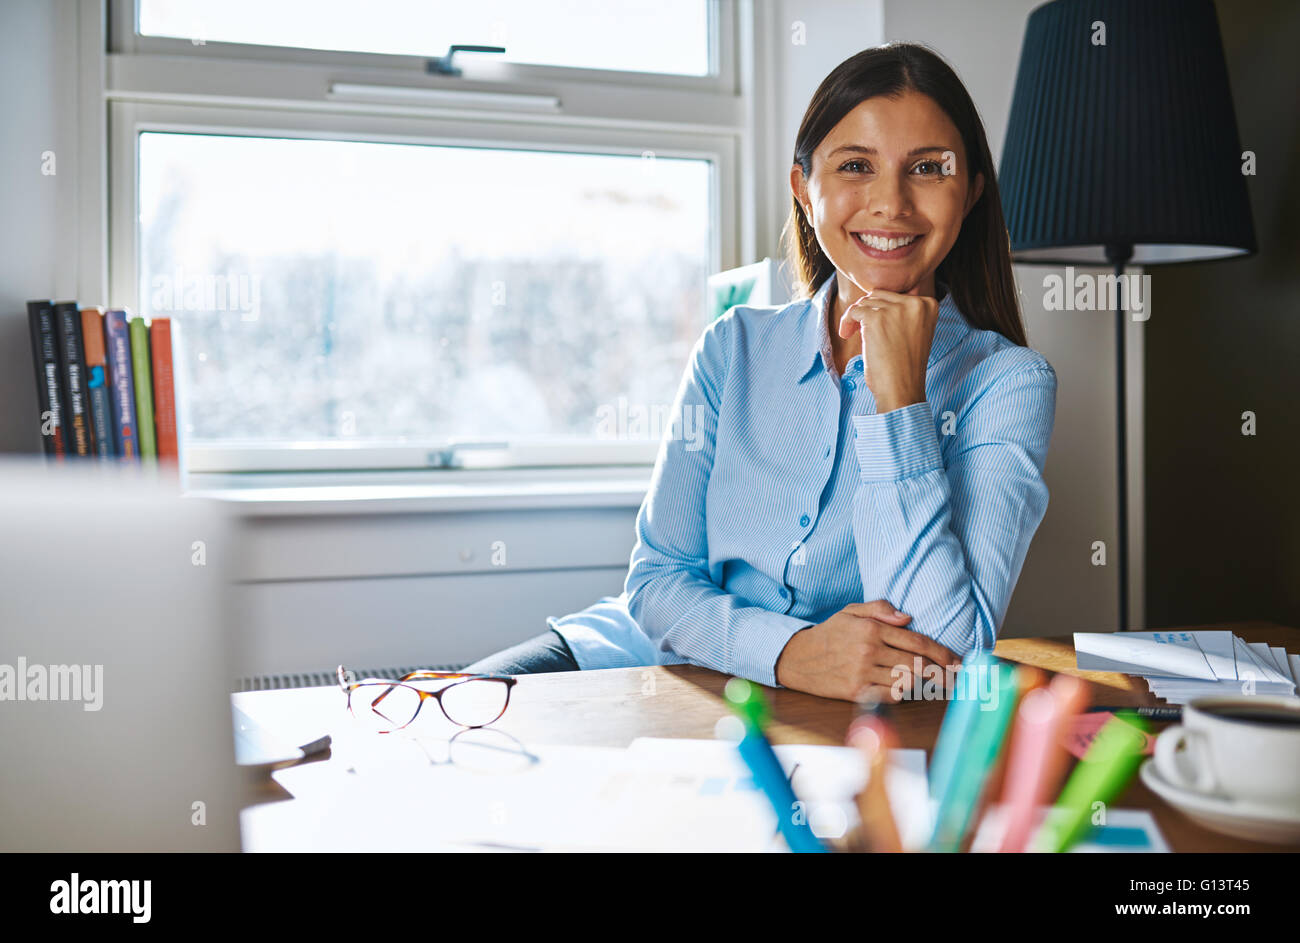 Cheerful woman with hand on chin wearing blue shirt while seated at desk covered with papers, coffee and eyeglasses - Stock Image